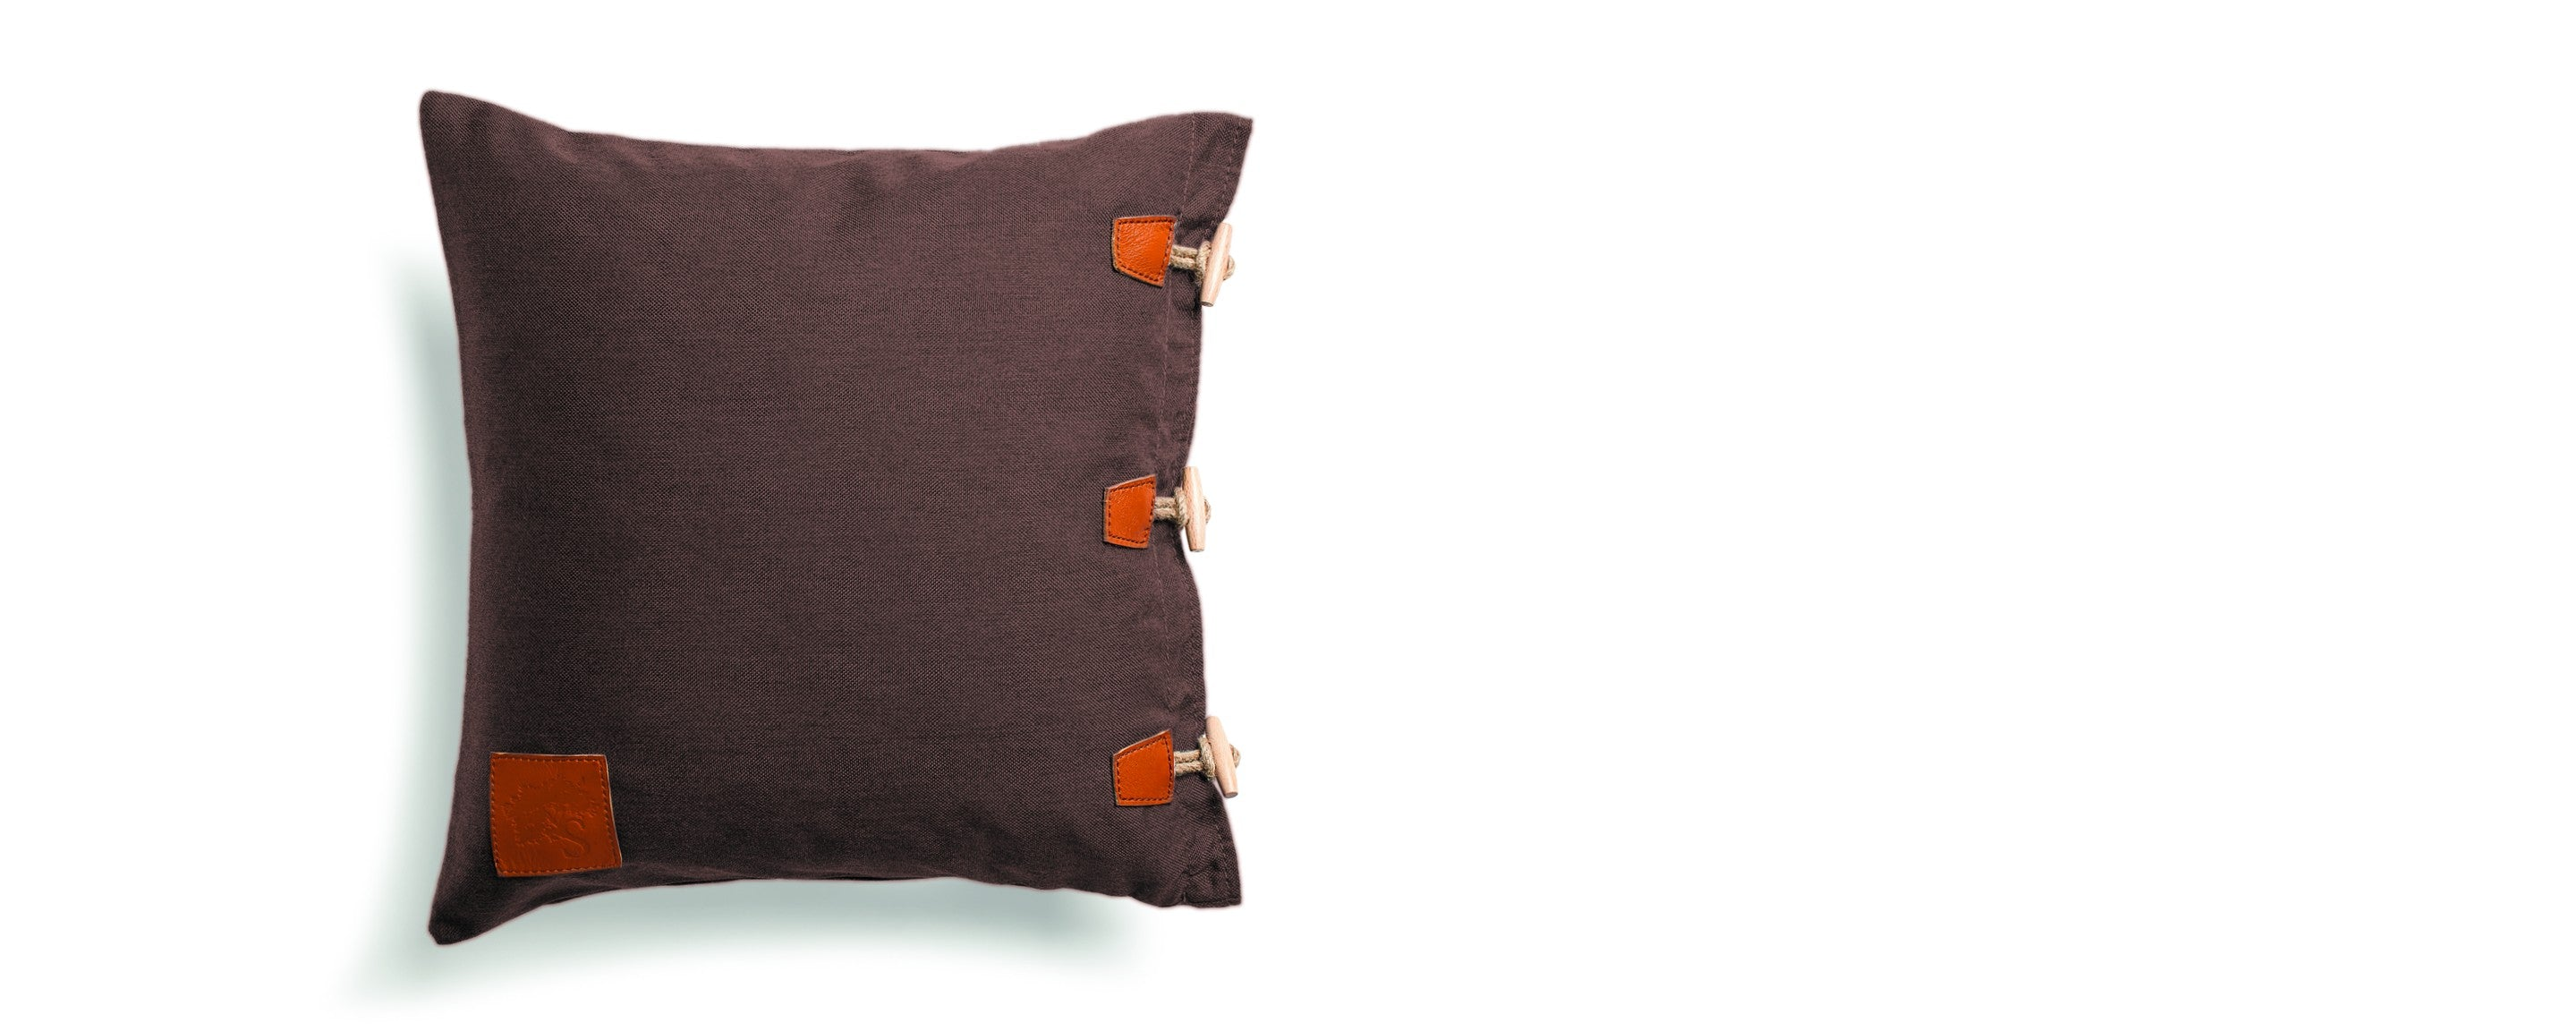 hemse outdoor pillow